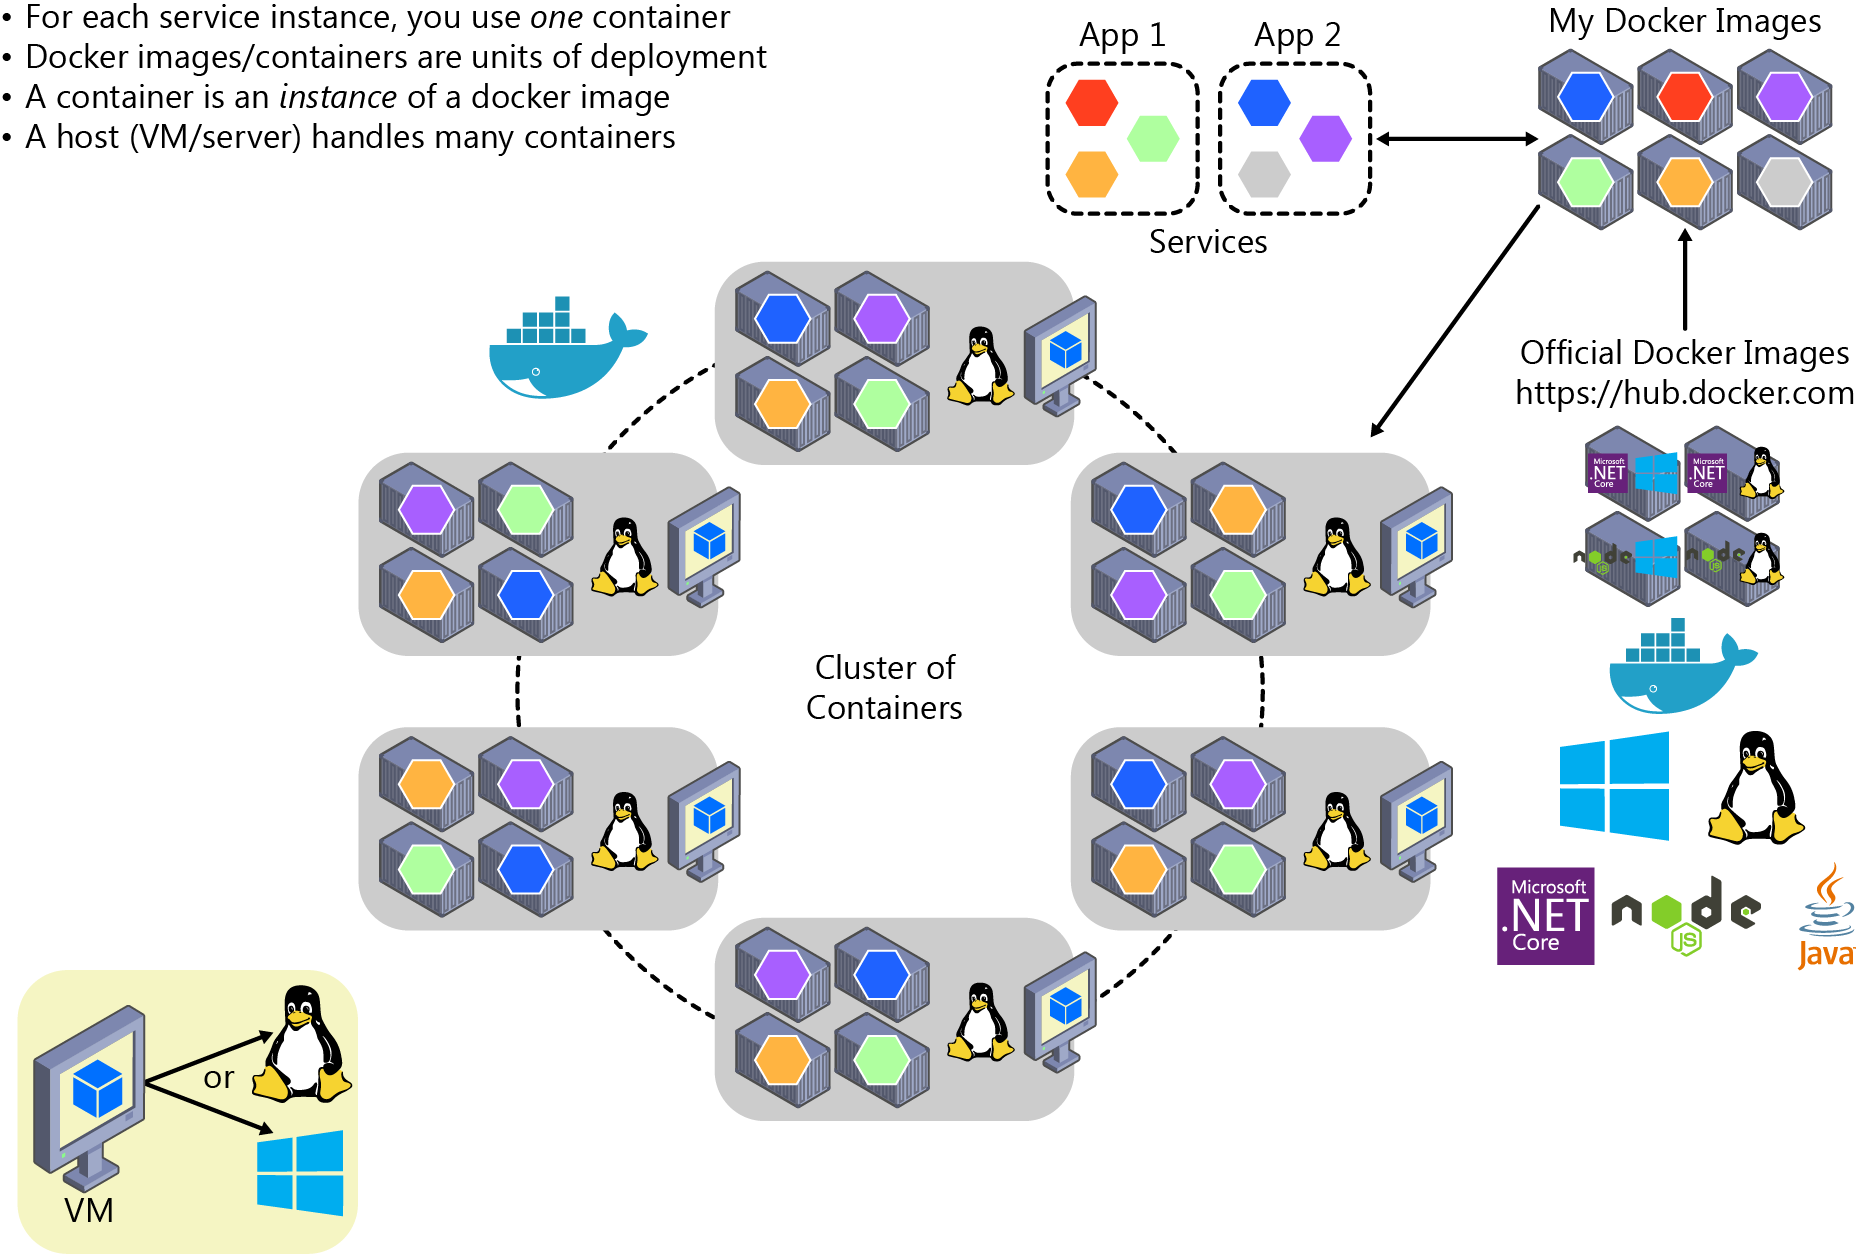 Orchestrating microservices and multi-container applications for